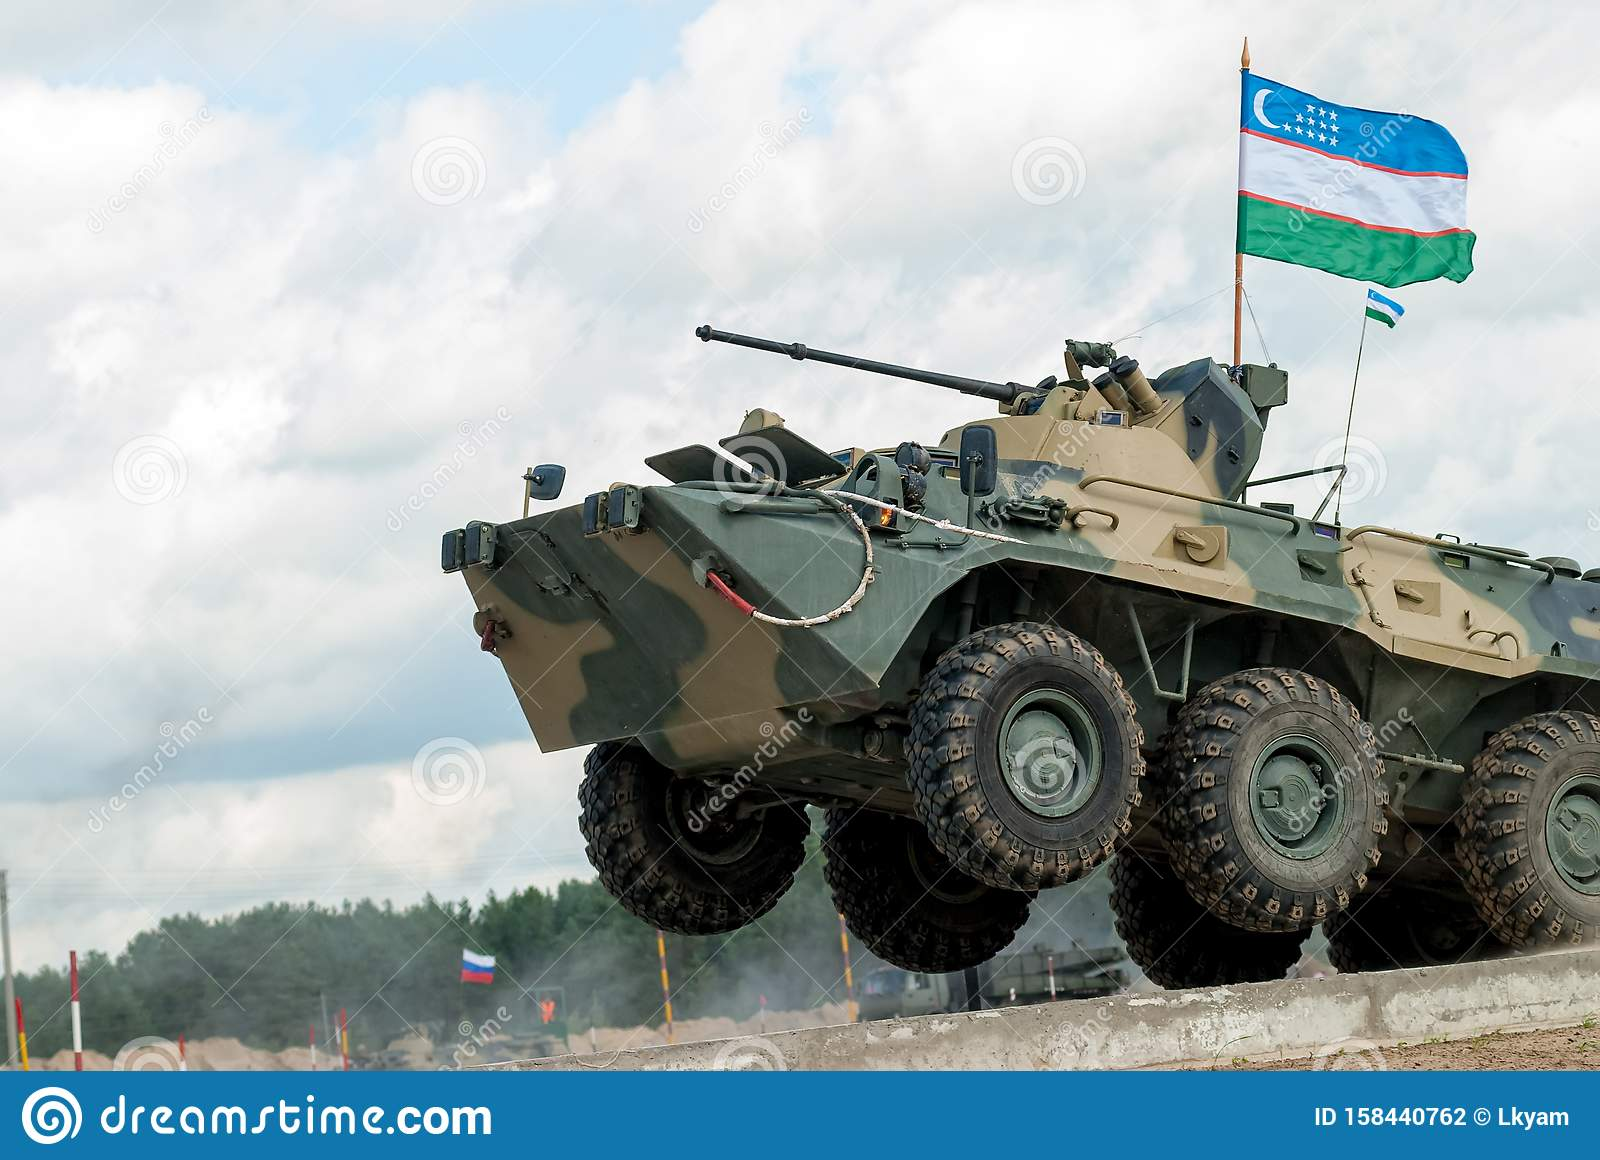 BTR-82 Amphibious Armoured Personnel Carrier Editorial Photography - Image of attack. battle: 158440762